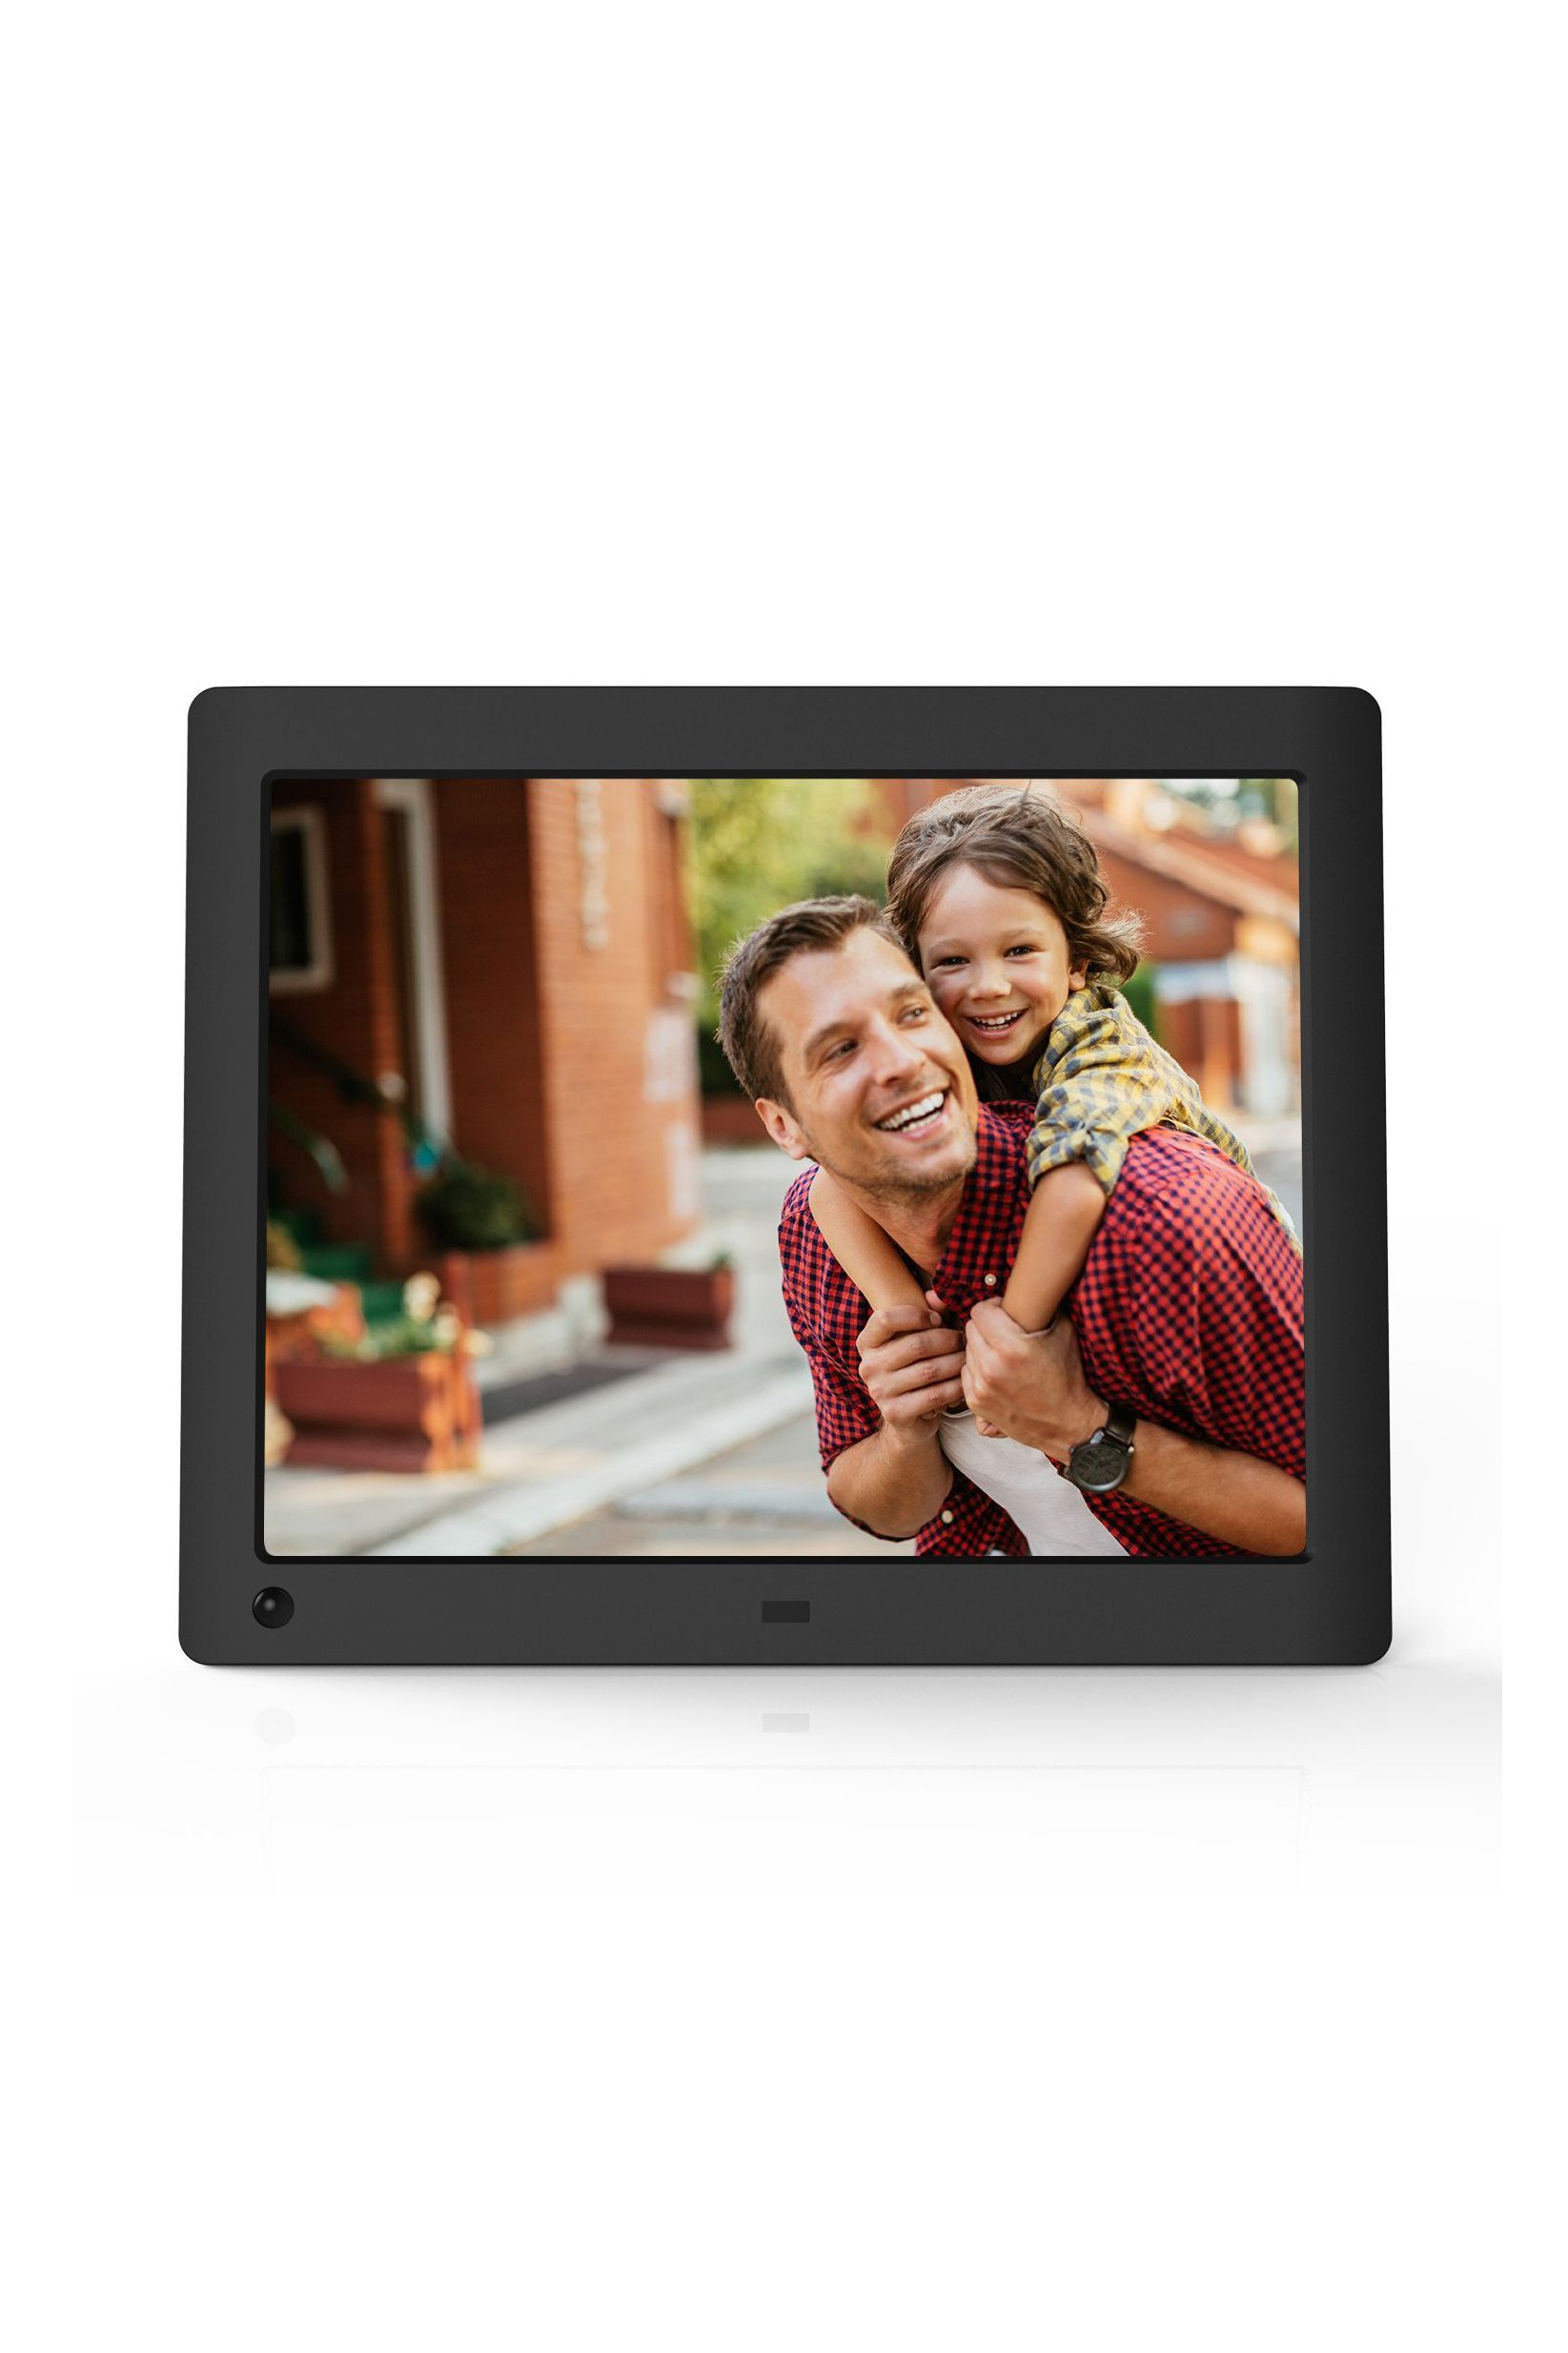 5e473044a214 25 Personalized Photo Gift Ideas - Best Family Photo Gifts for Christmas